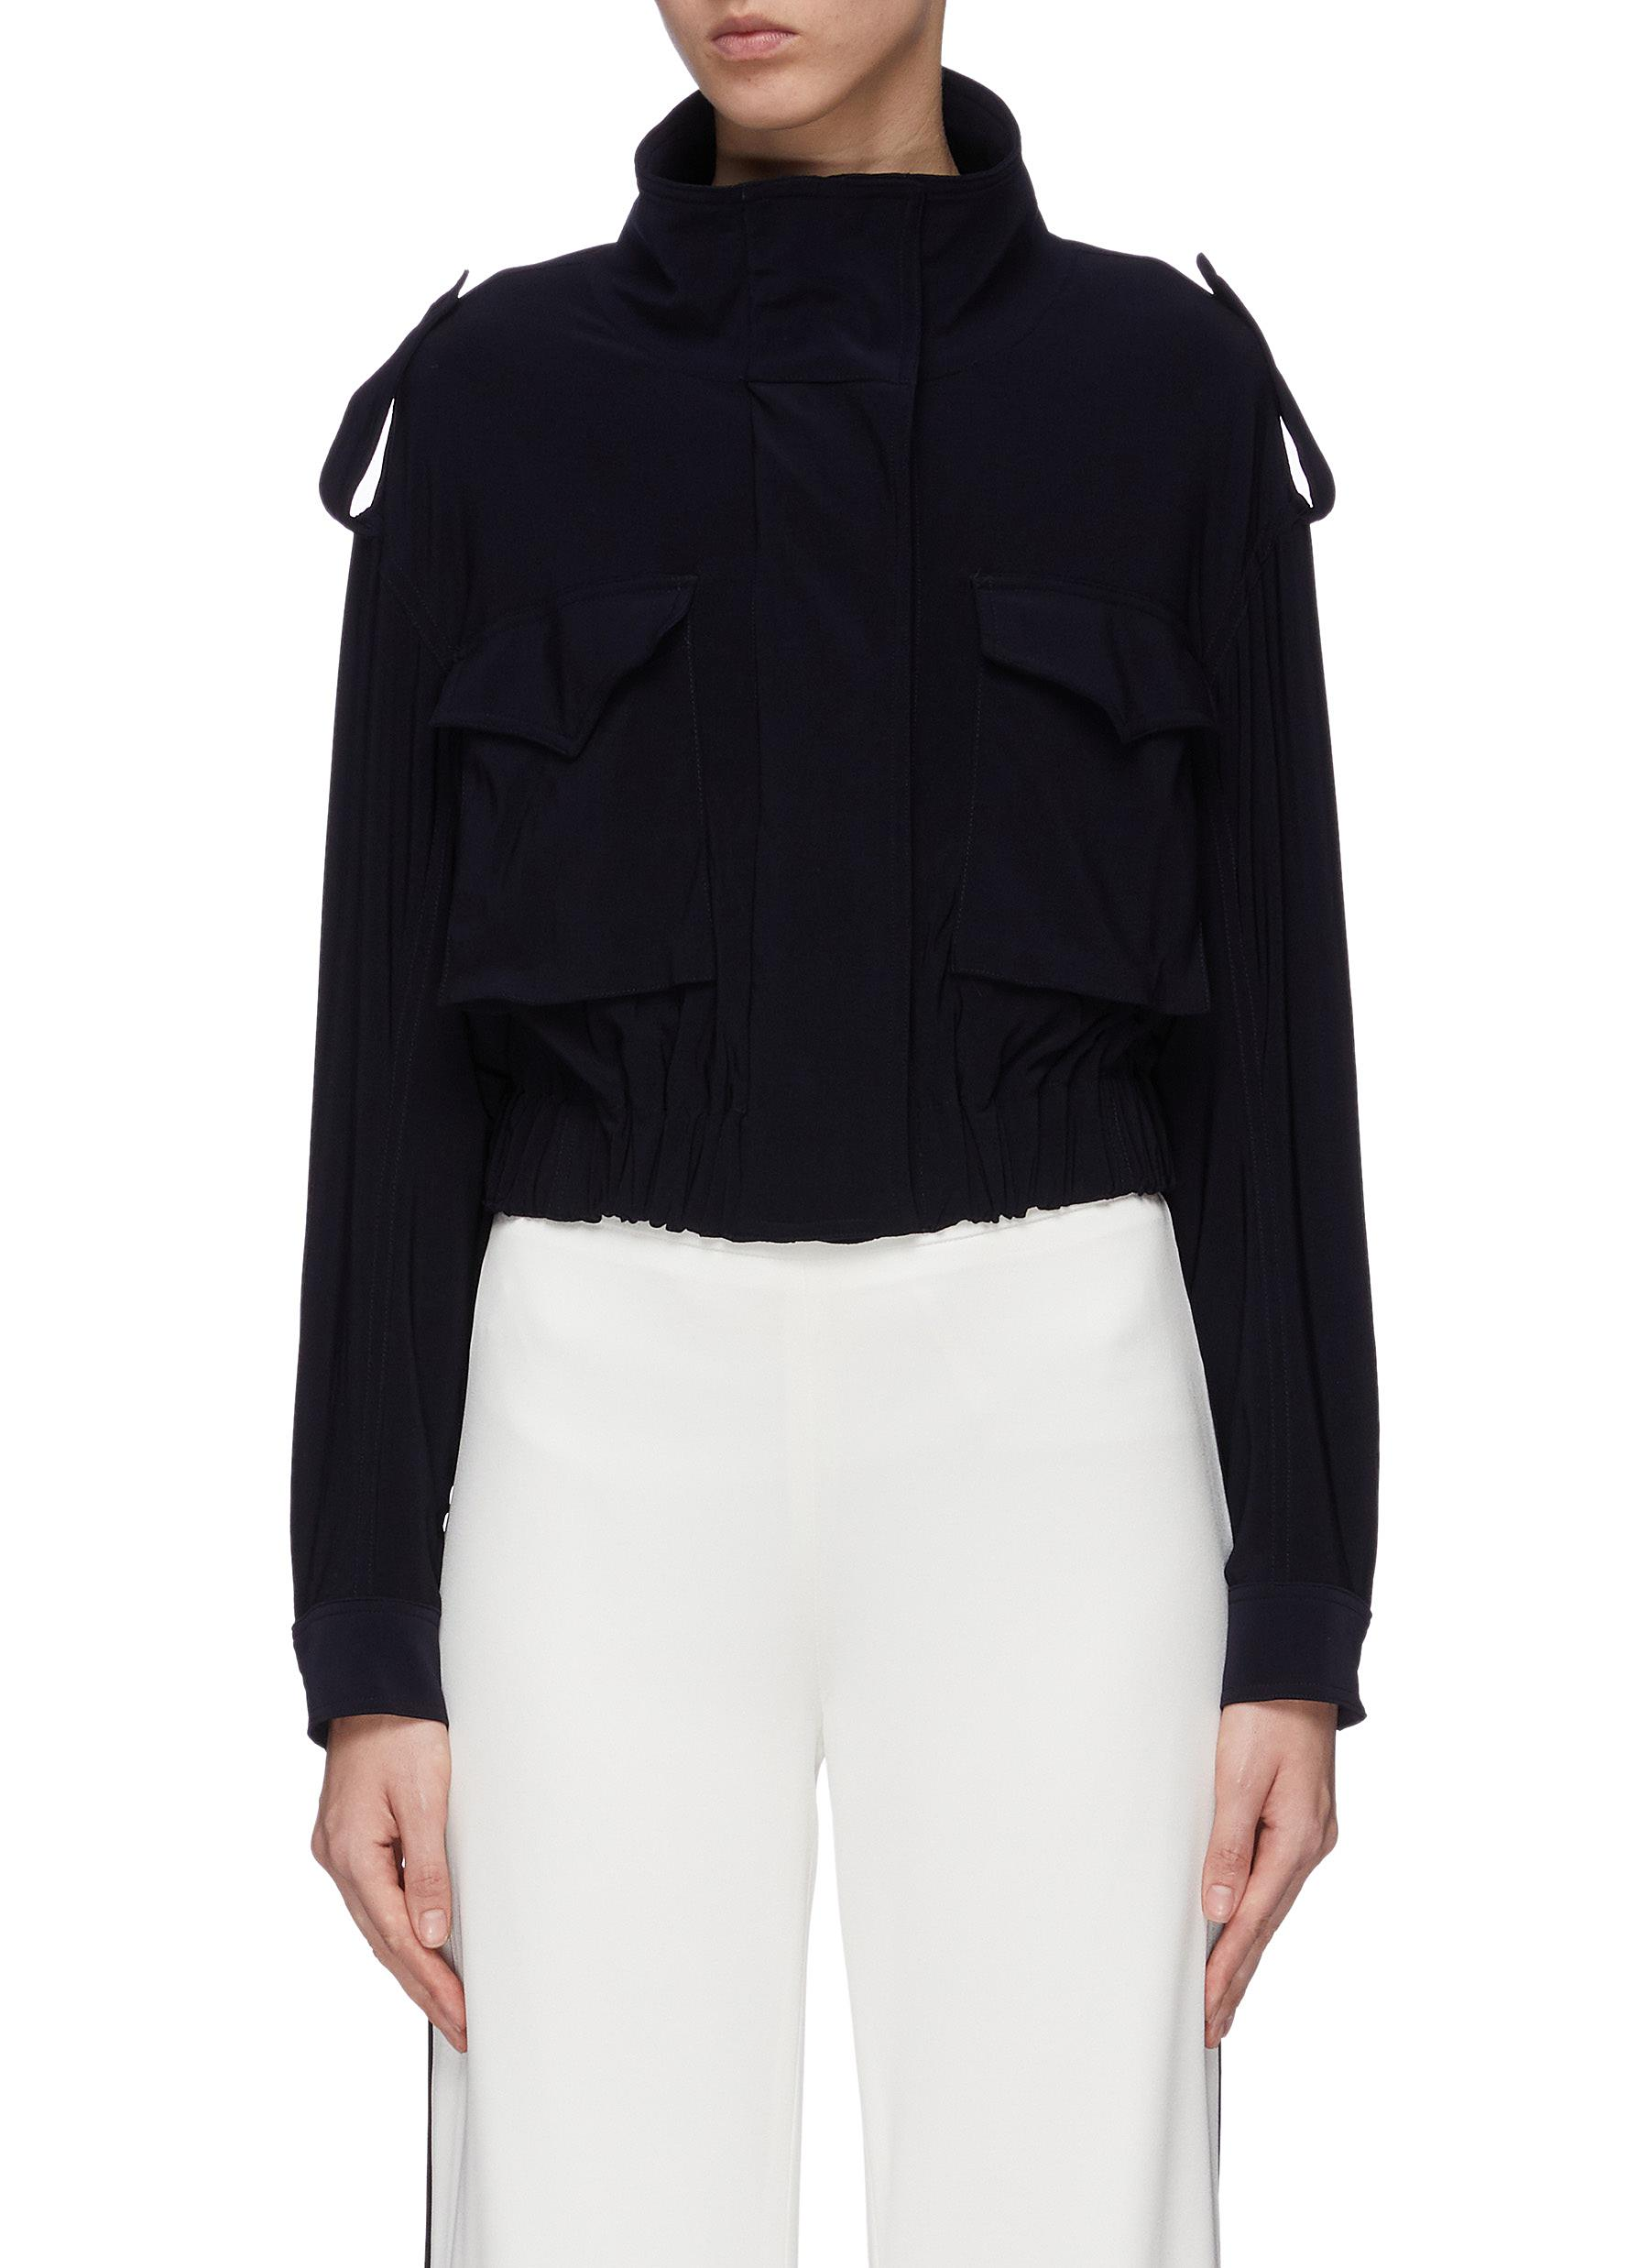 Cropped boxy cargo turtleneck jacket by Norma Kamali